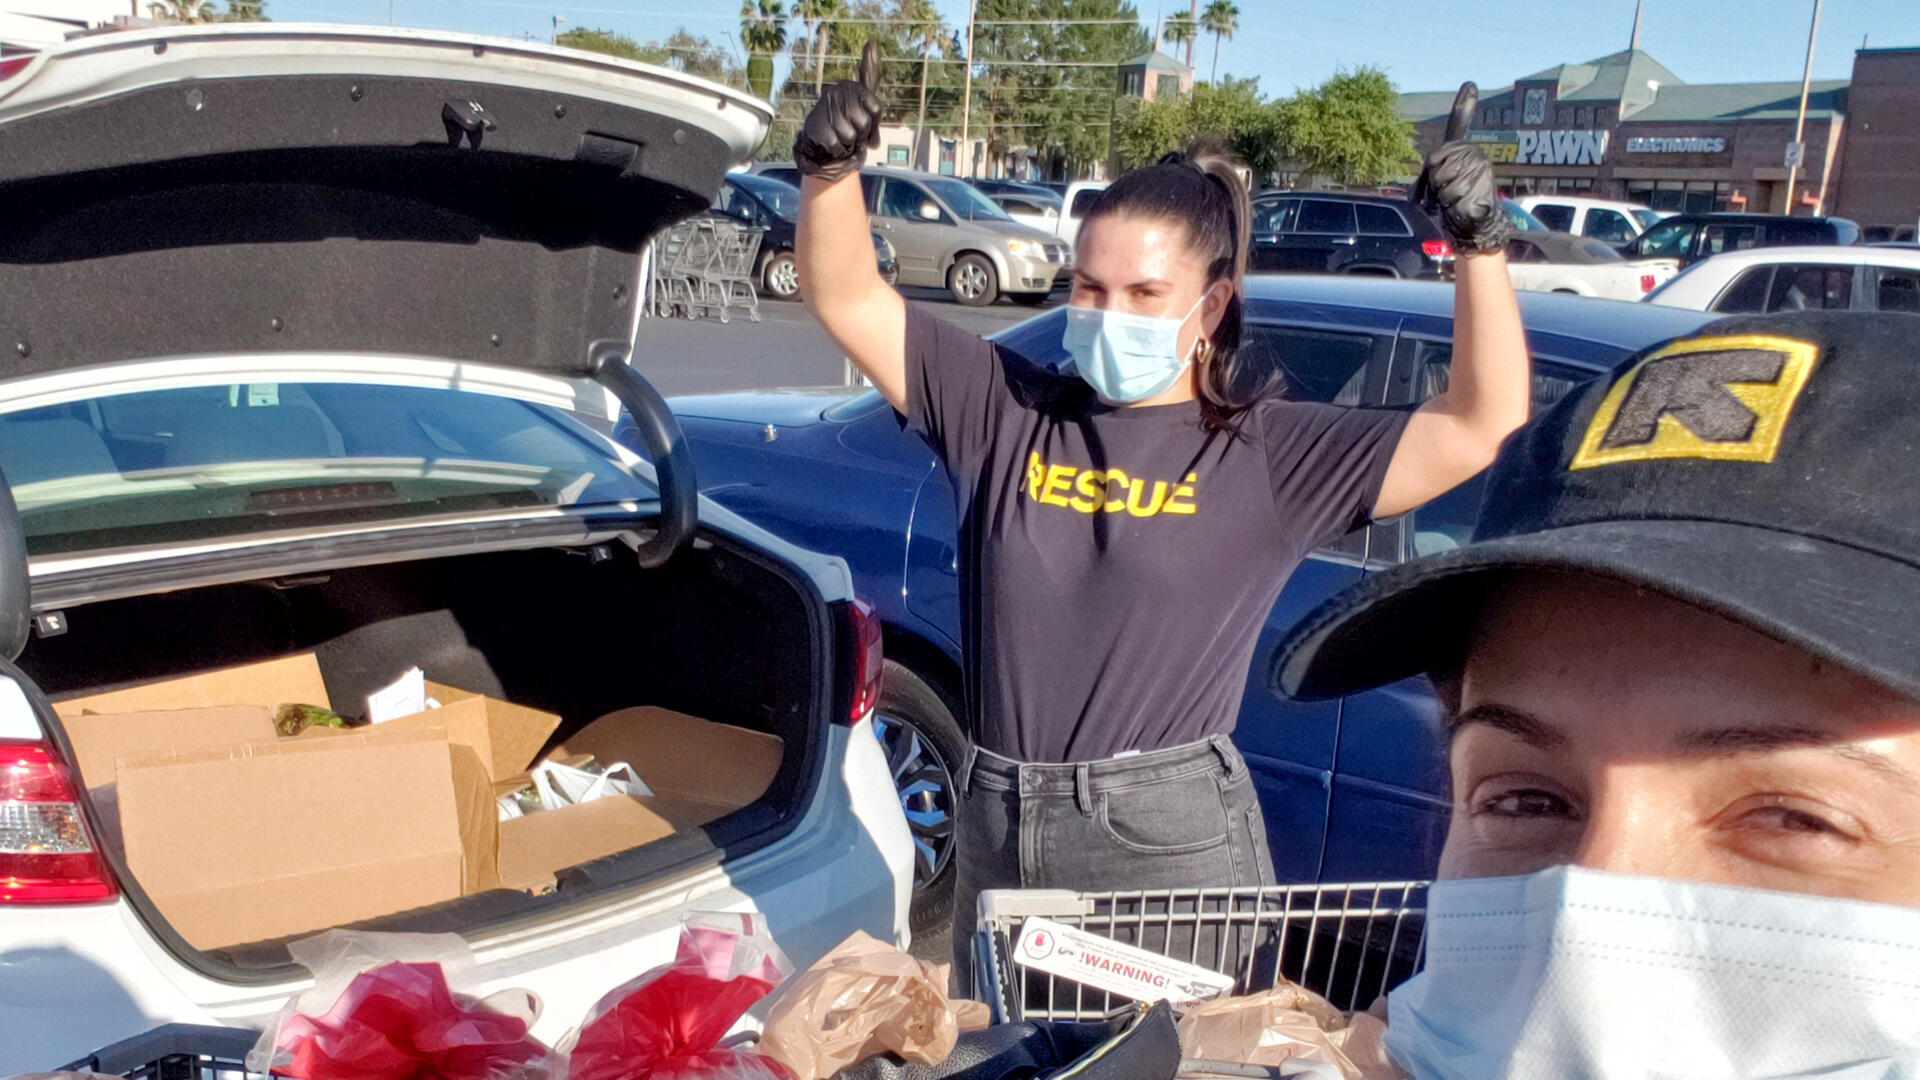 Two IRC staff members wearing IRC shirts and hats stand next to a car with an open trunk. In the trunk are groceries they recently bought for refugee and immigrant families.